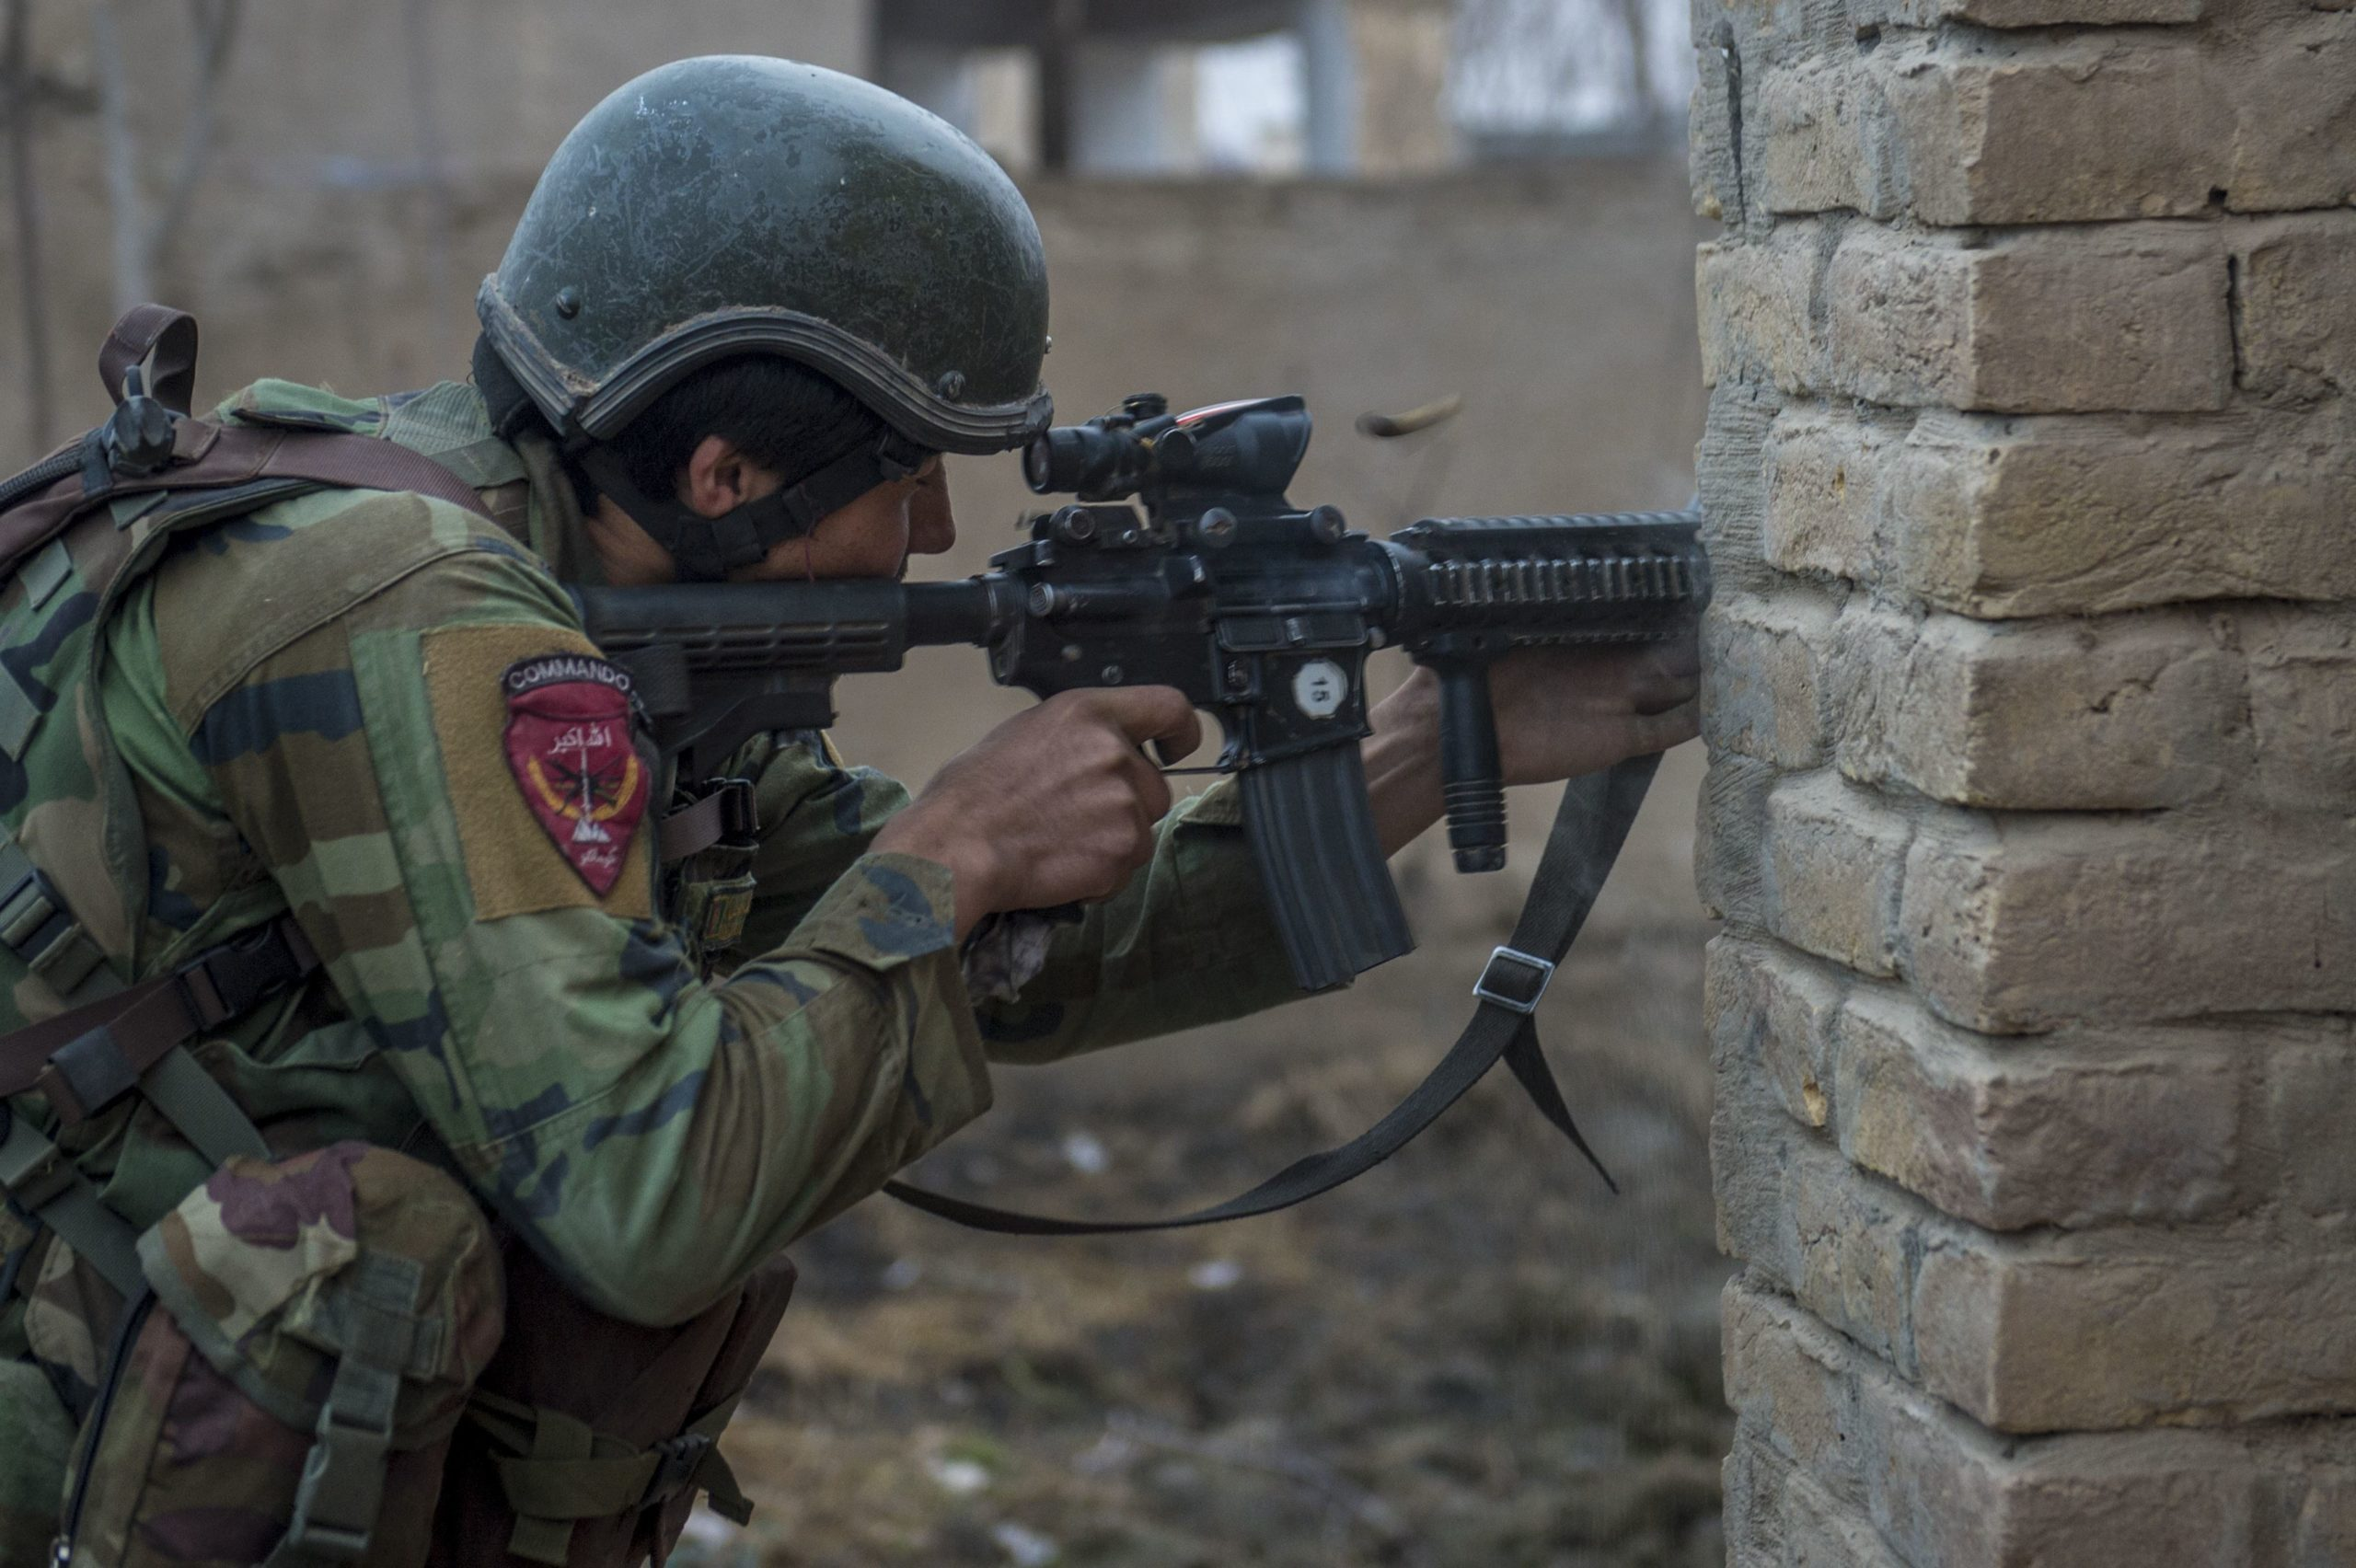 An Afghan national Army 10th Special Operations Kandak Commando returns fire during offensive operations against the Taliban in Kunduz province, Afghanistan, January 20, 2018.